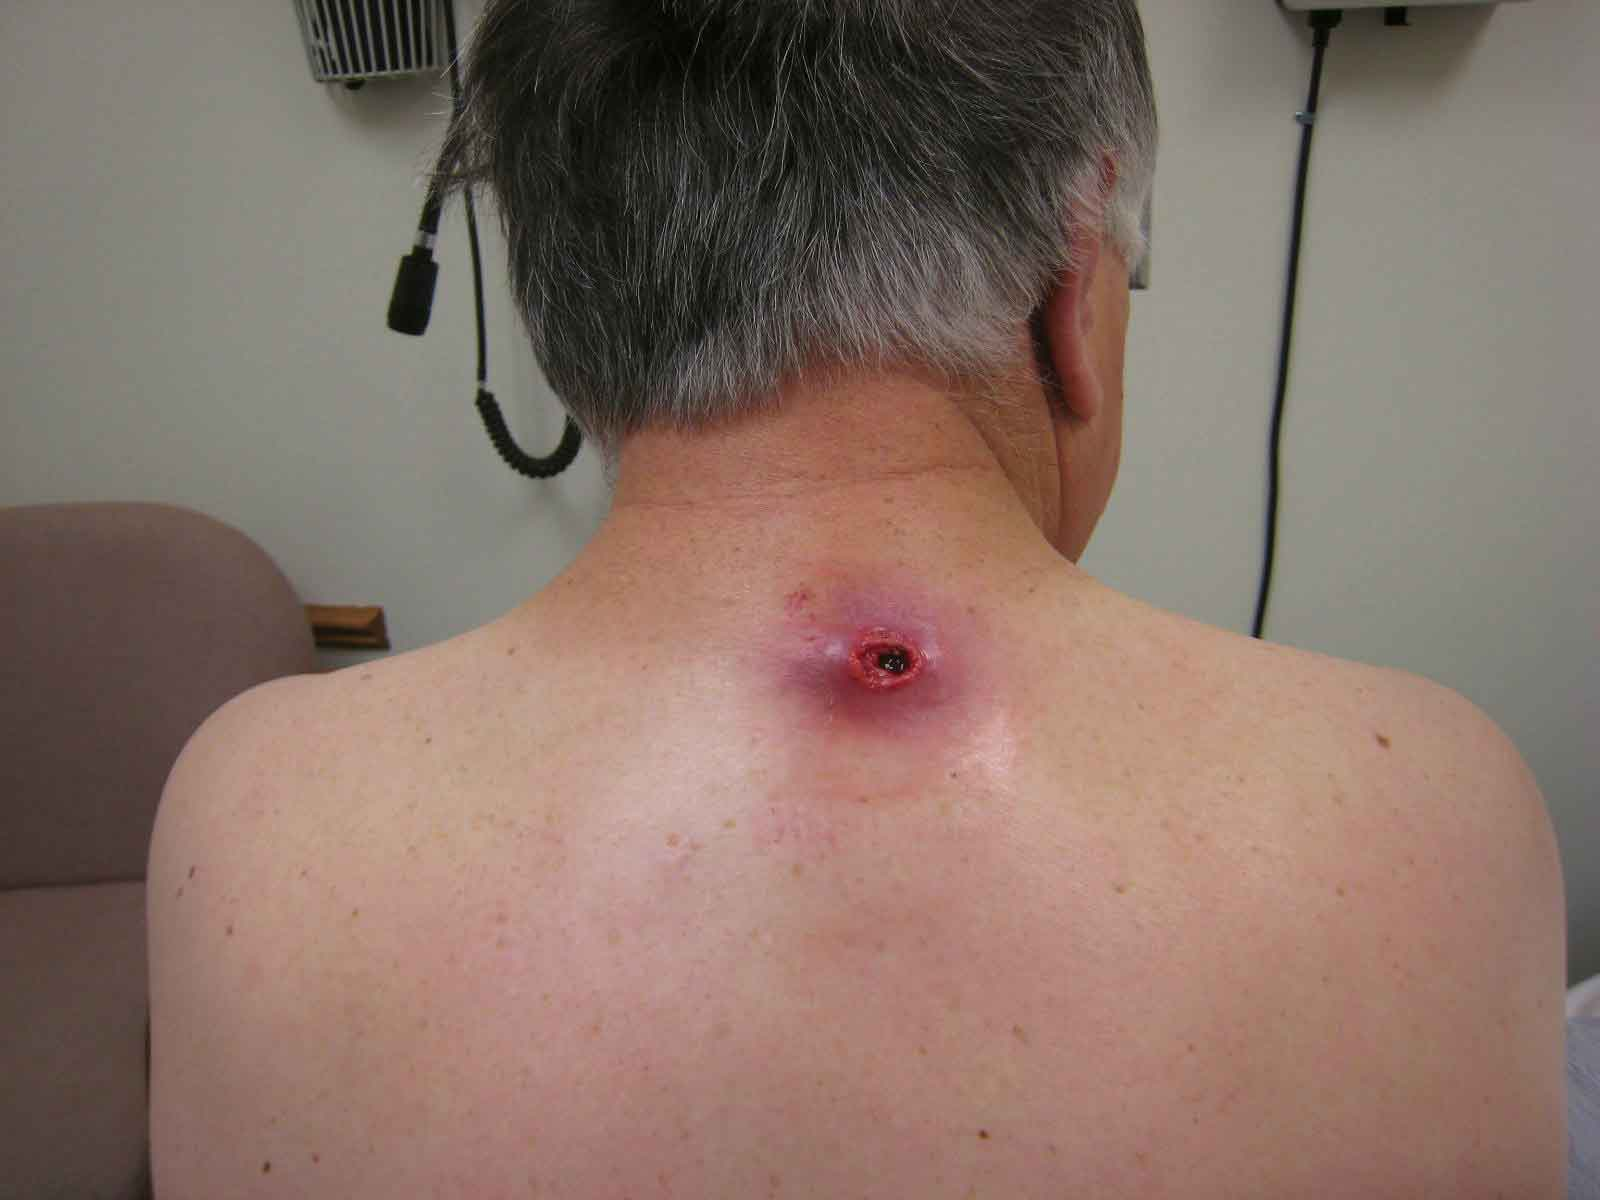 Epidermoid and pilar cysts (sebaceous cysts) - WebMD Boots